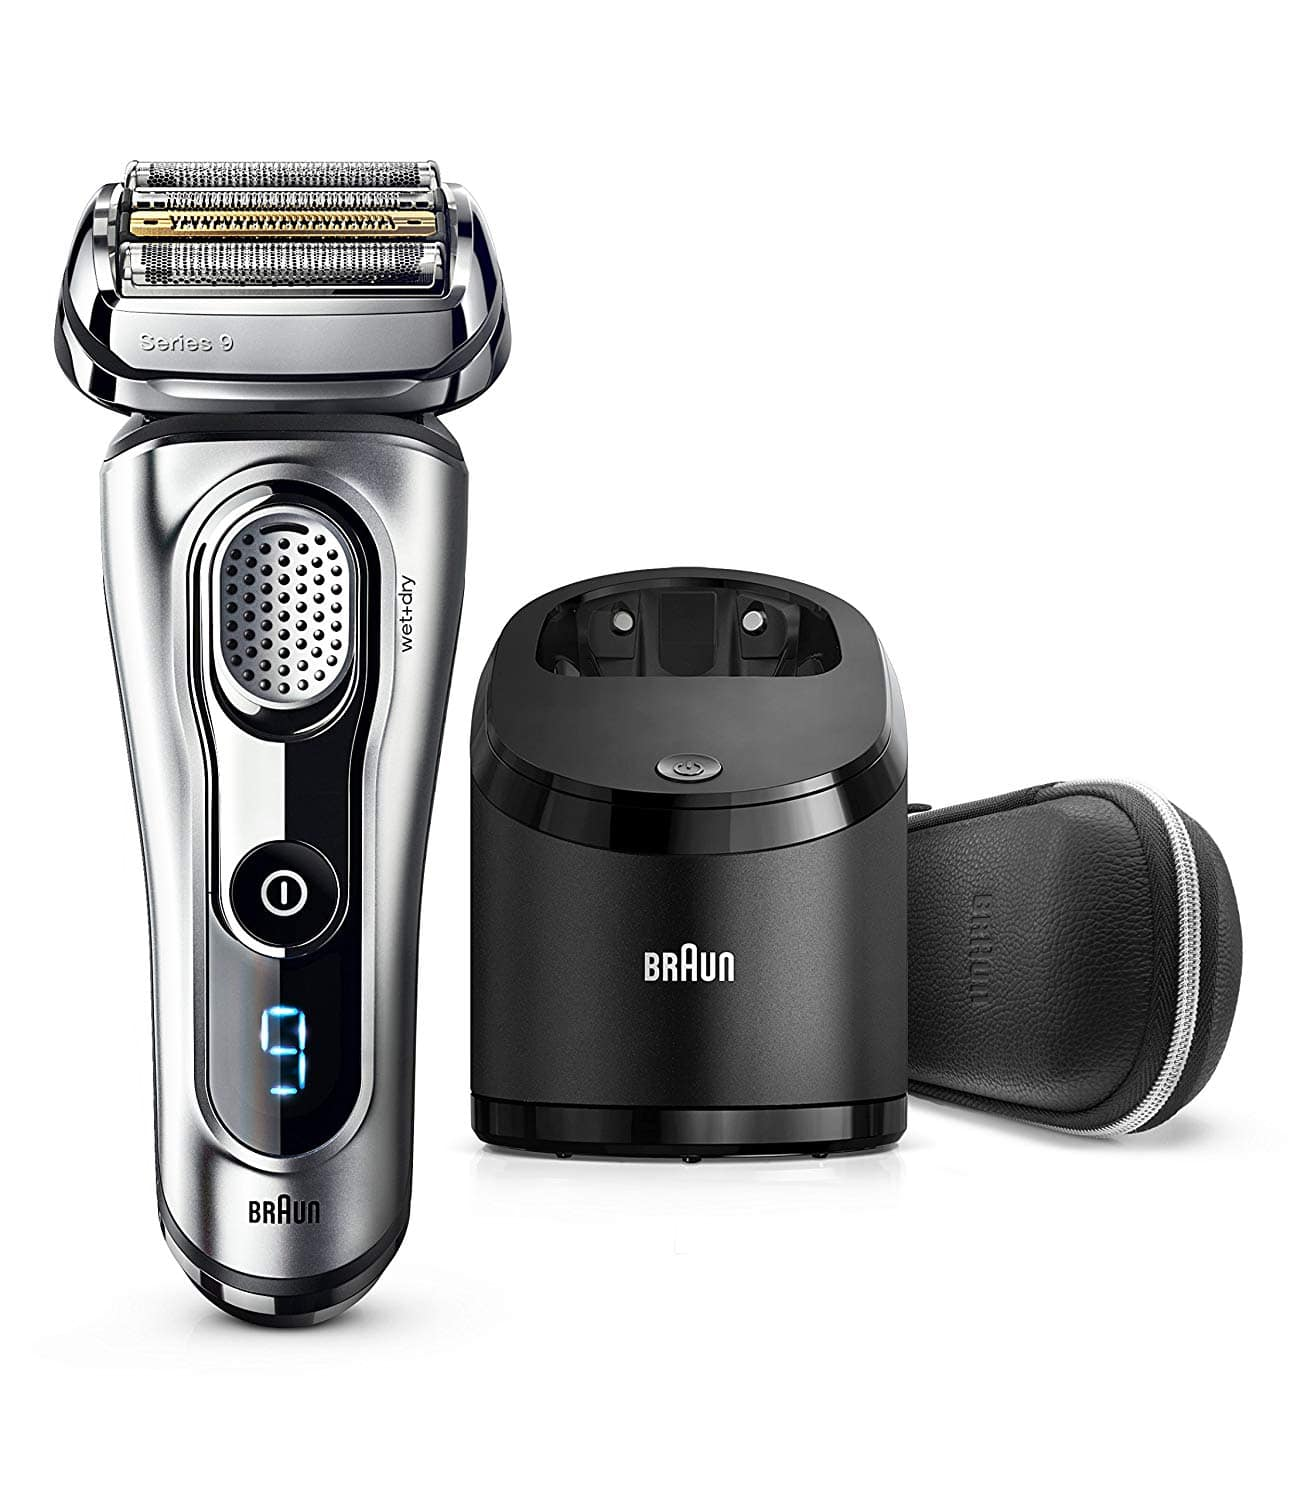 Amazon: Save up to $60 on Select Braun Electric Razors, Shavers, Trimmers, & Epilators + Free Shipping w/Prime